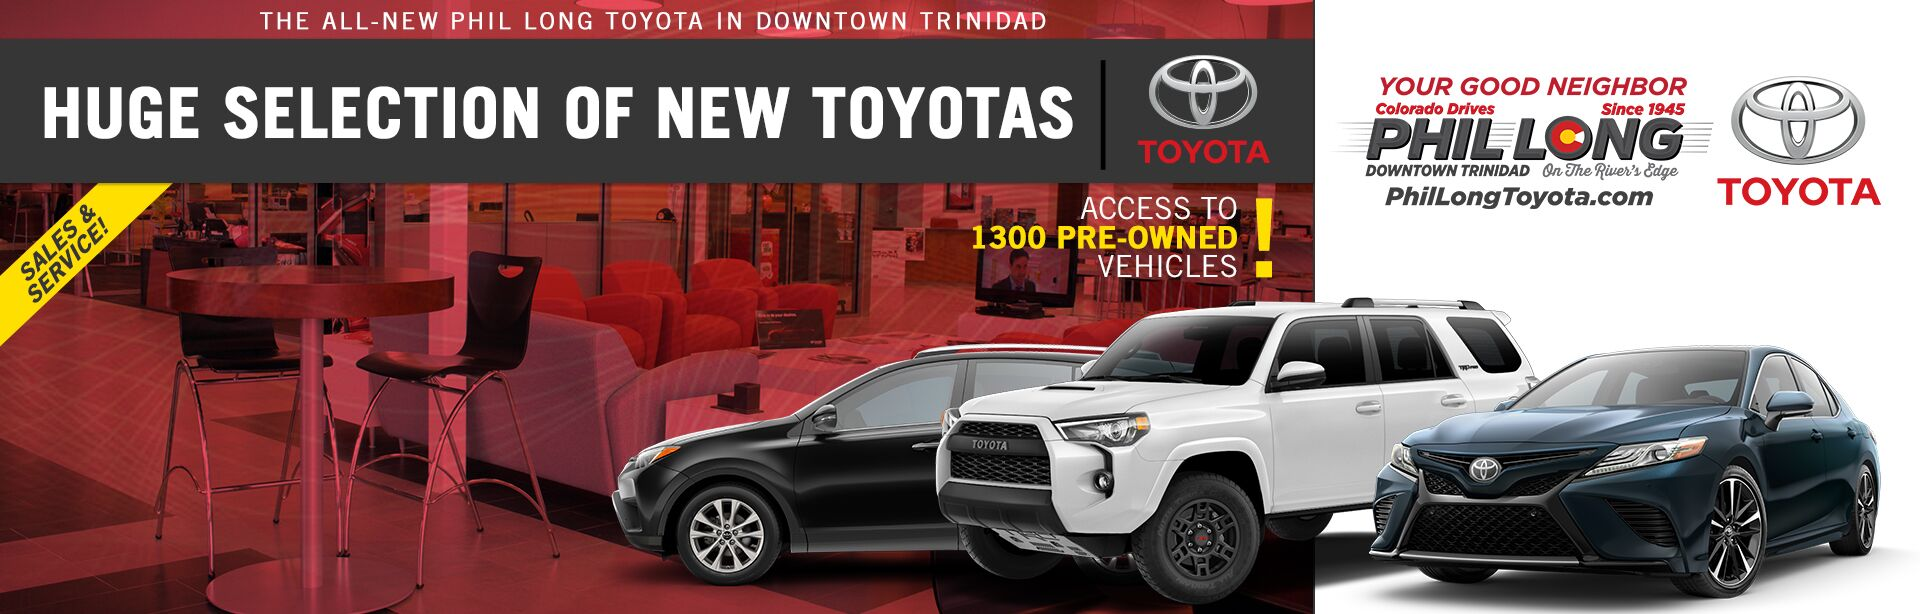 Huge Selection of New Toyotas